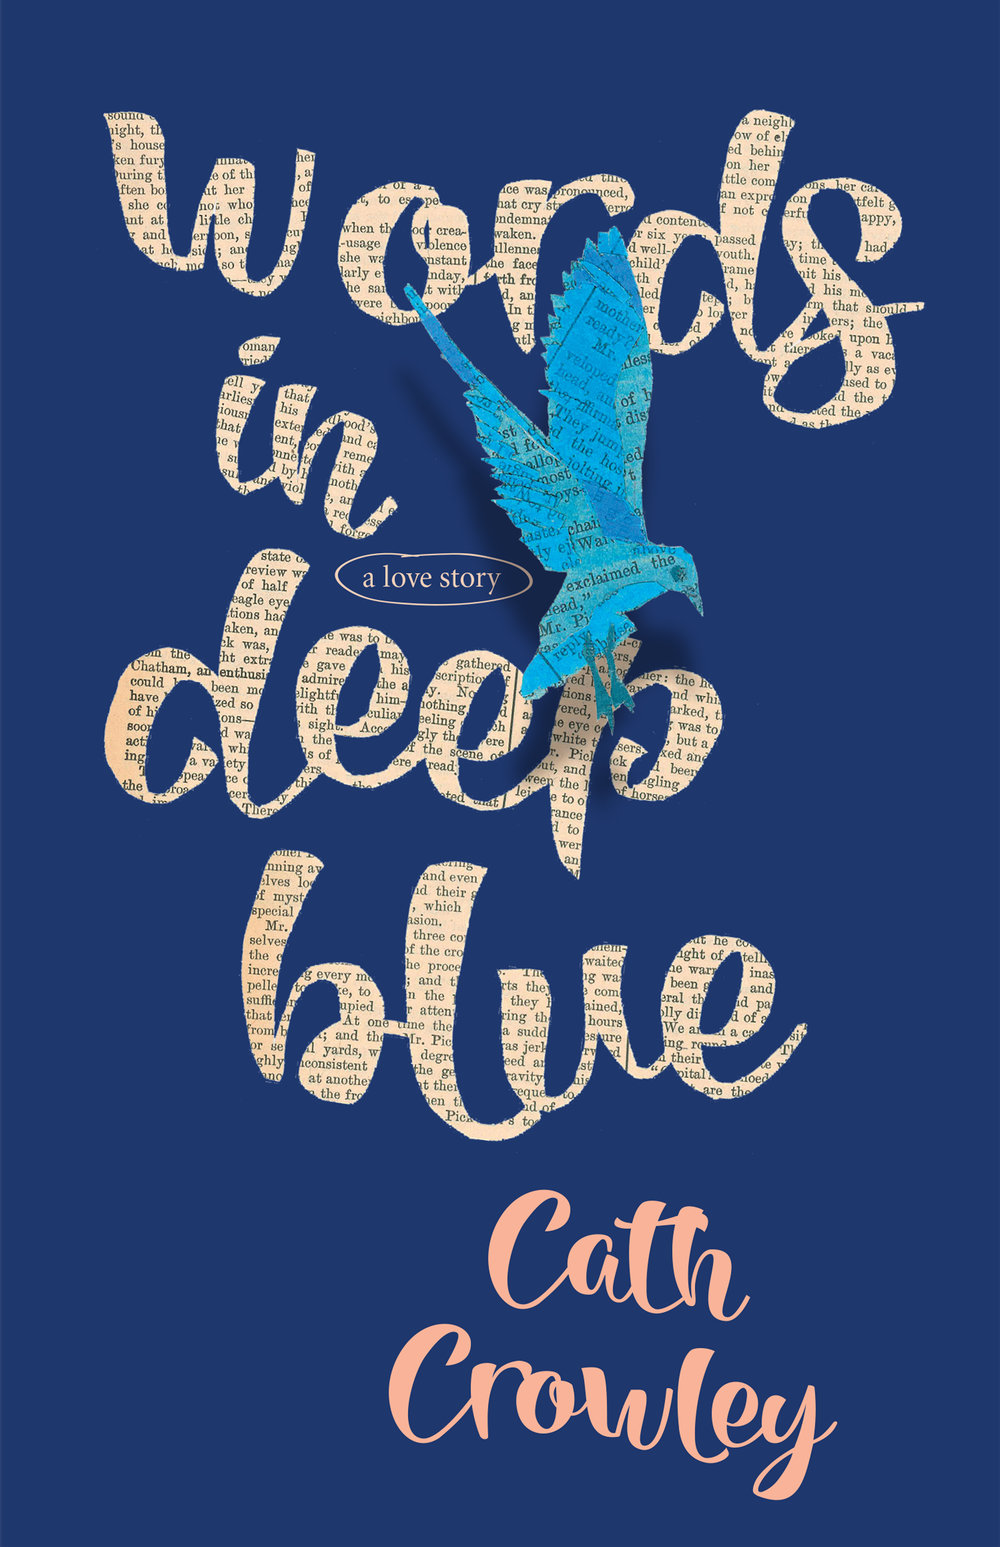 client   Pan Macmillan Australia     project  Words in Deep Blue by Cath Crowley | book cover